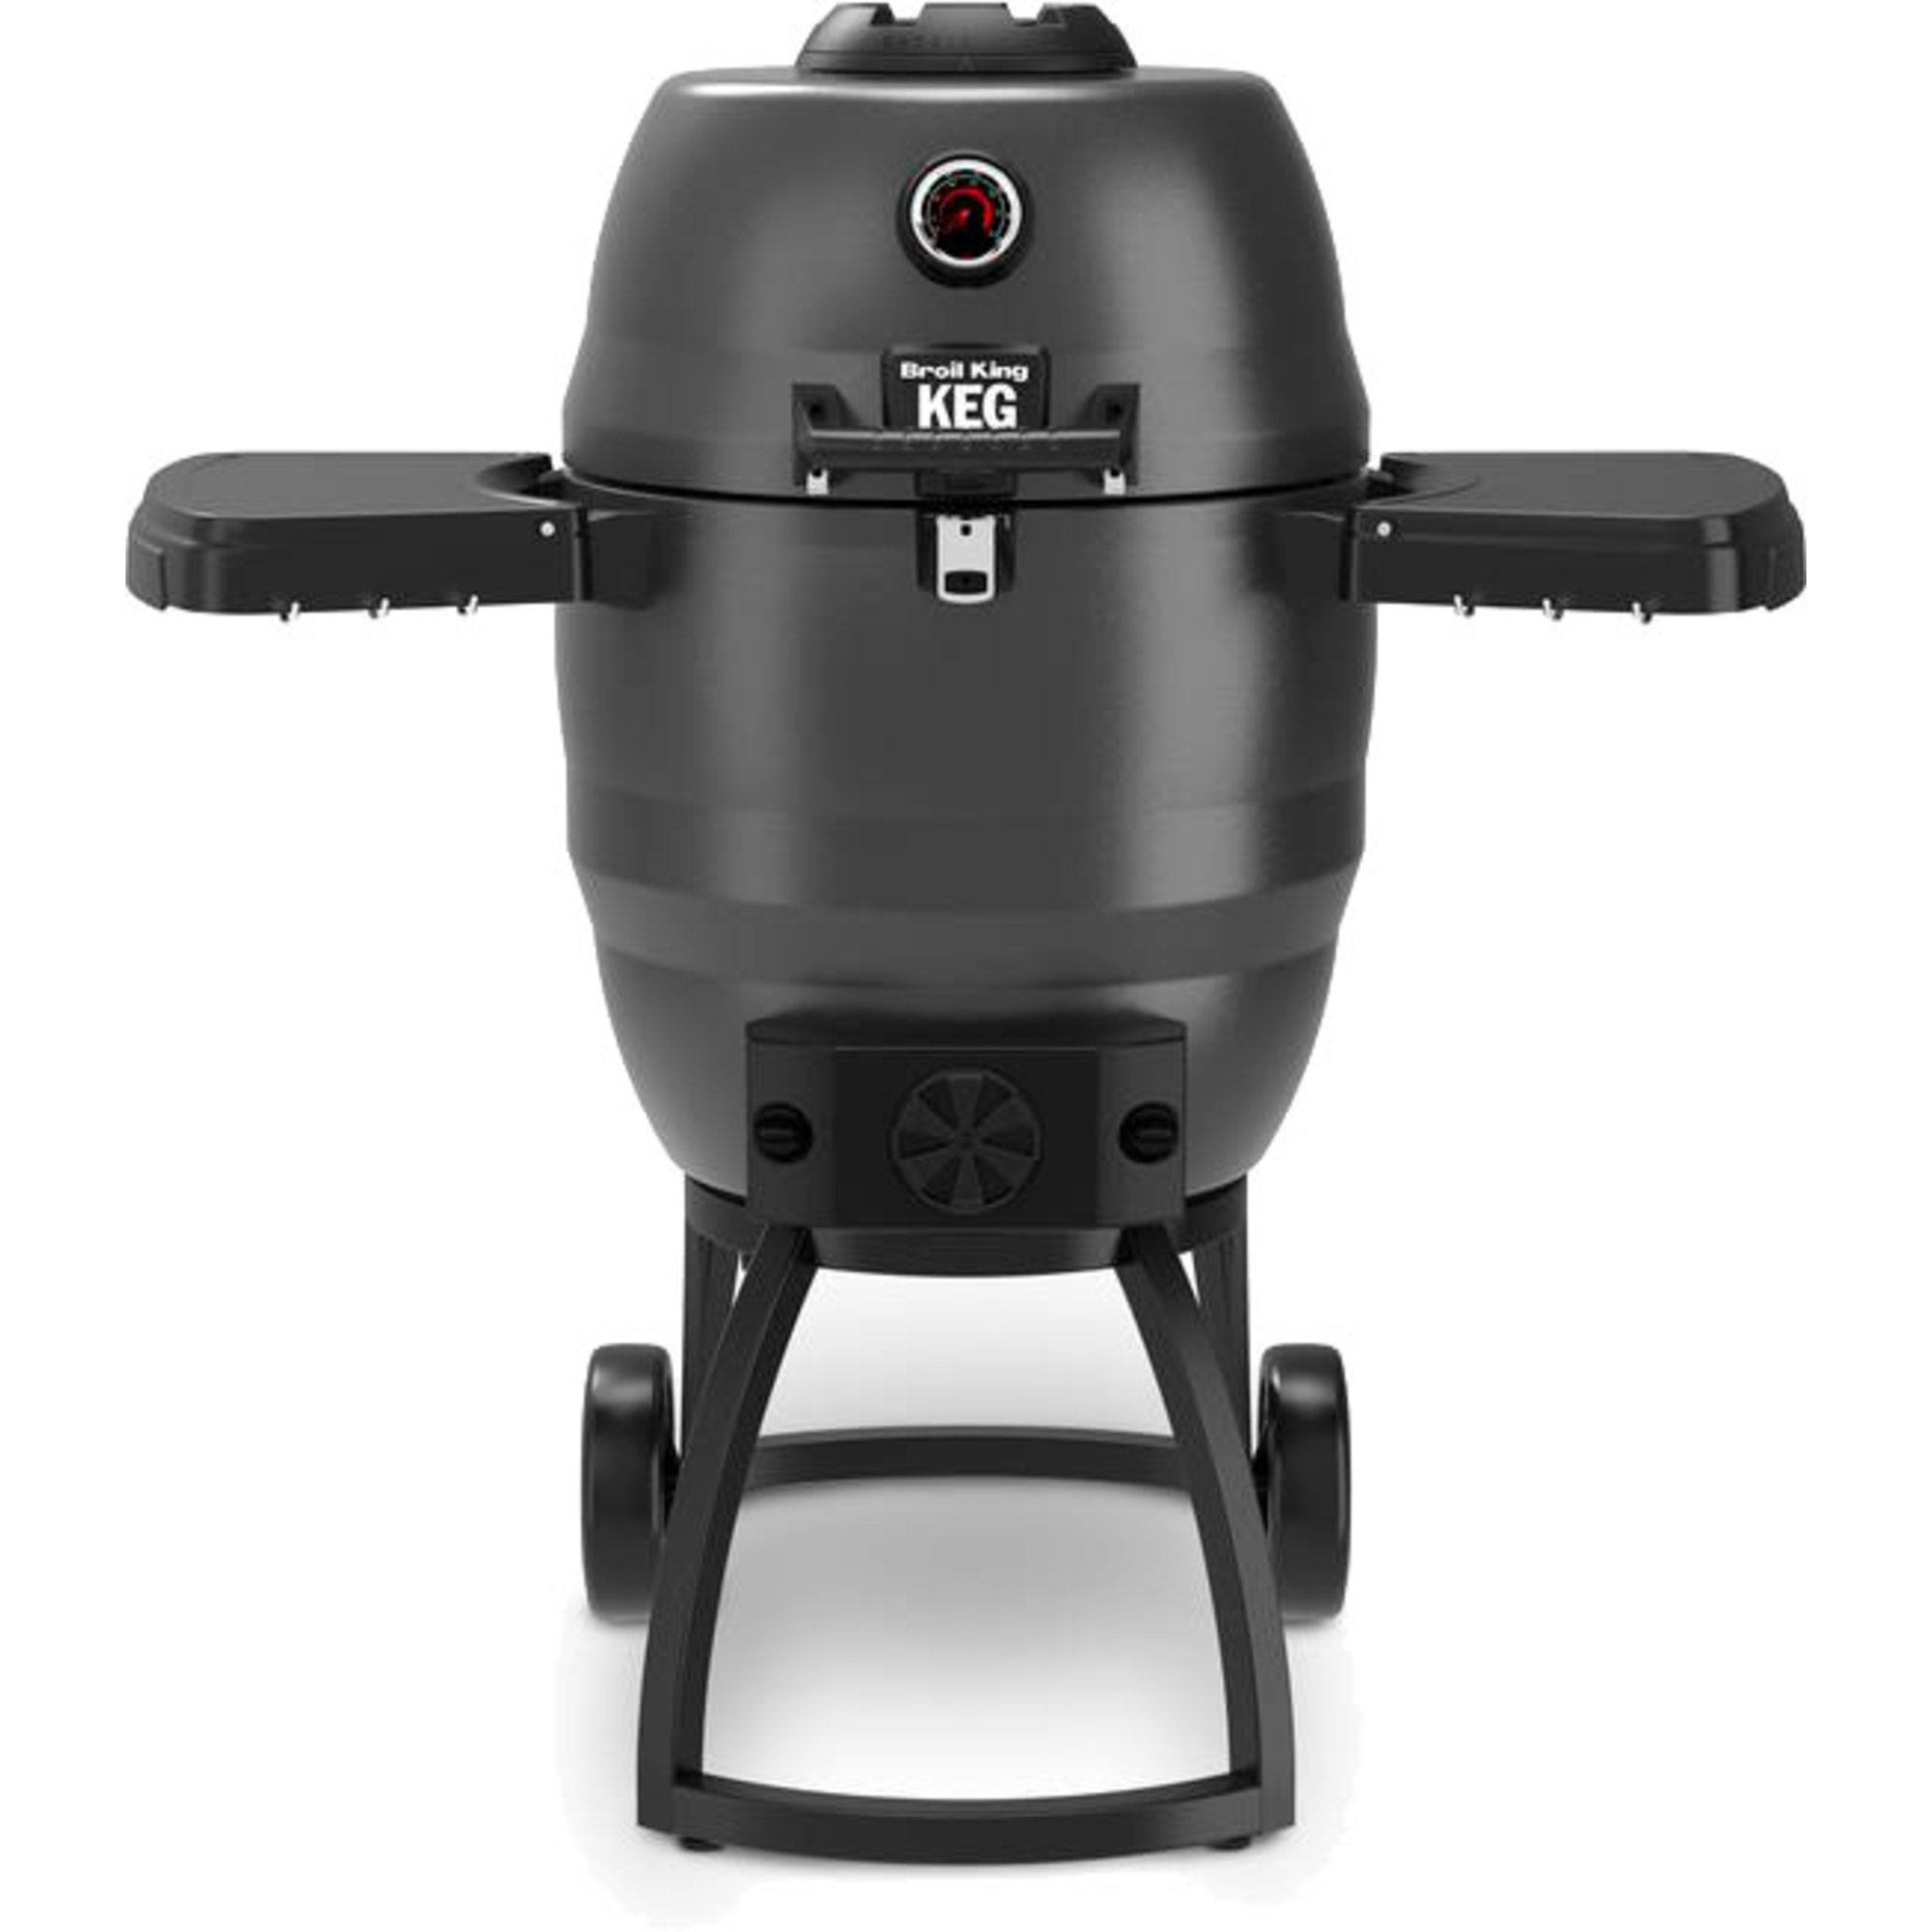 Broil King KEG 5000 kolgrill Ø47 cm.